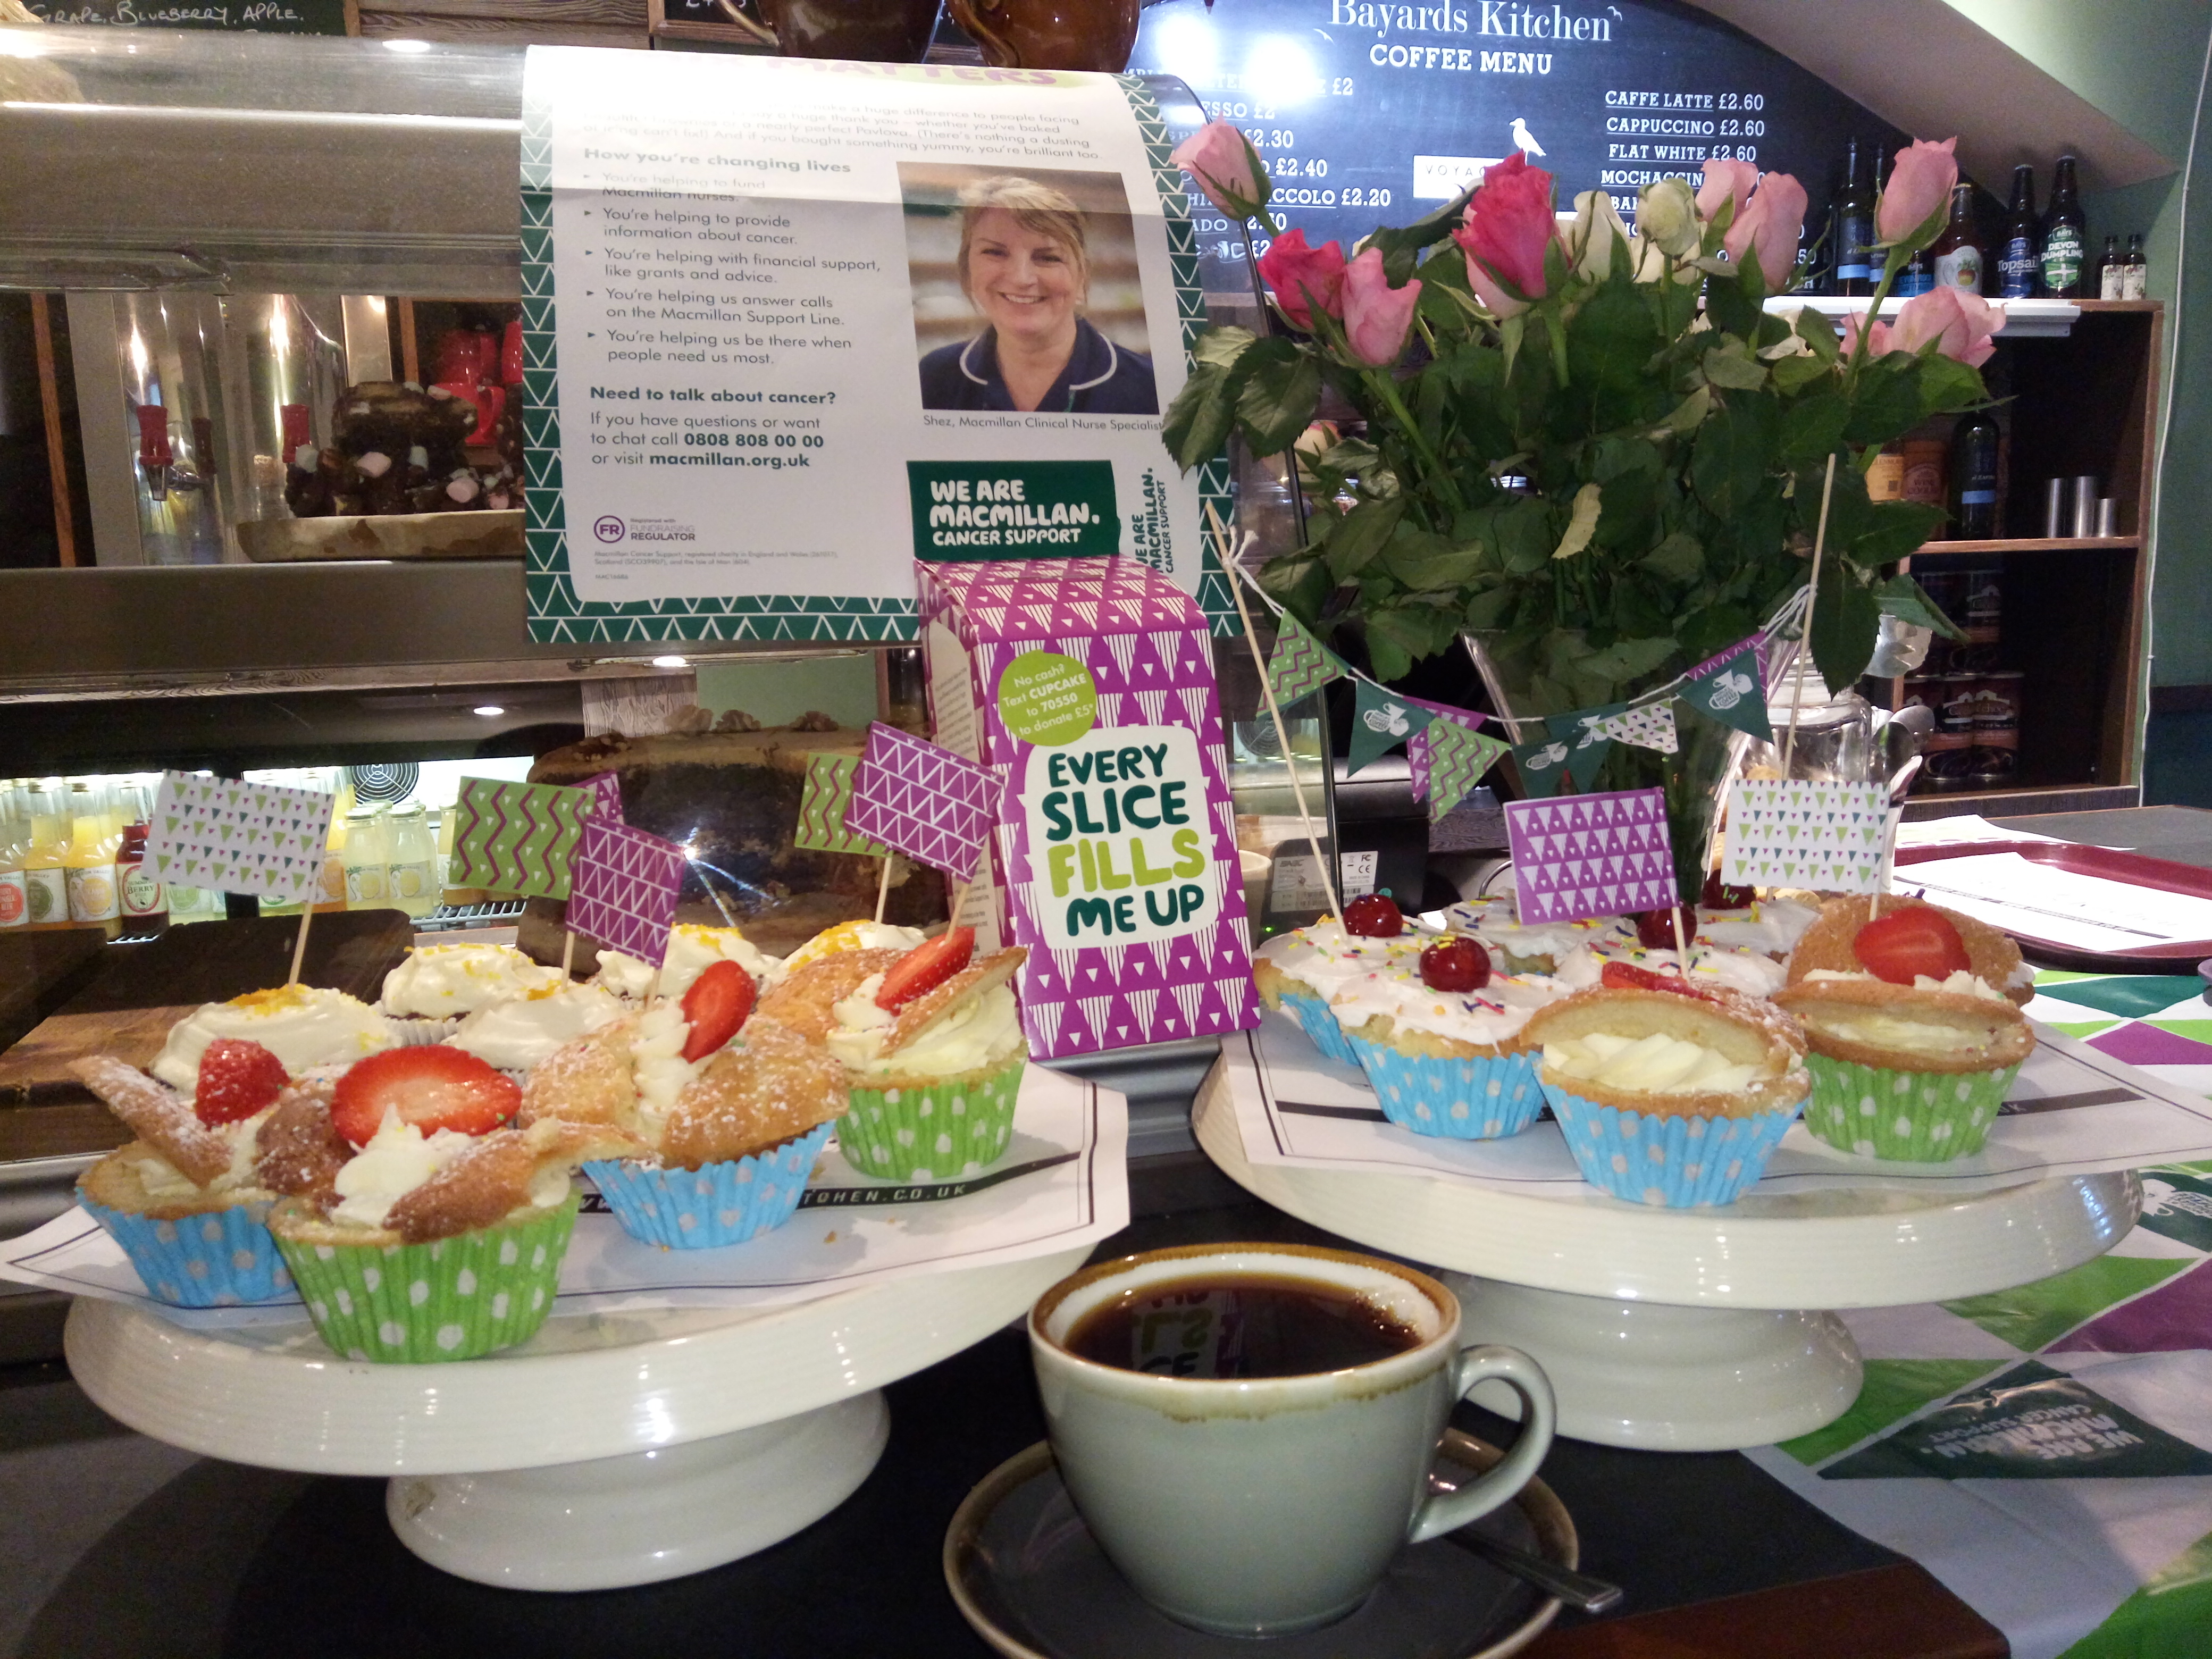 Bayards Kitchen: Coffee break and cup cakes